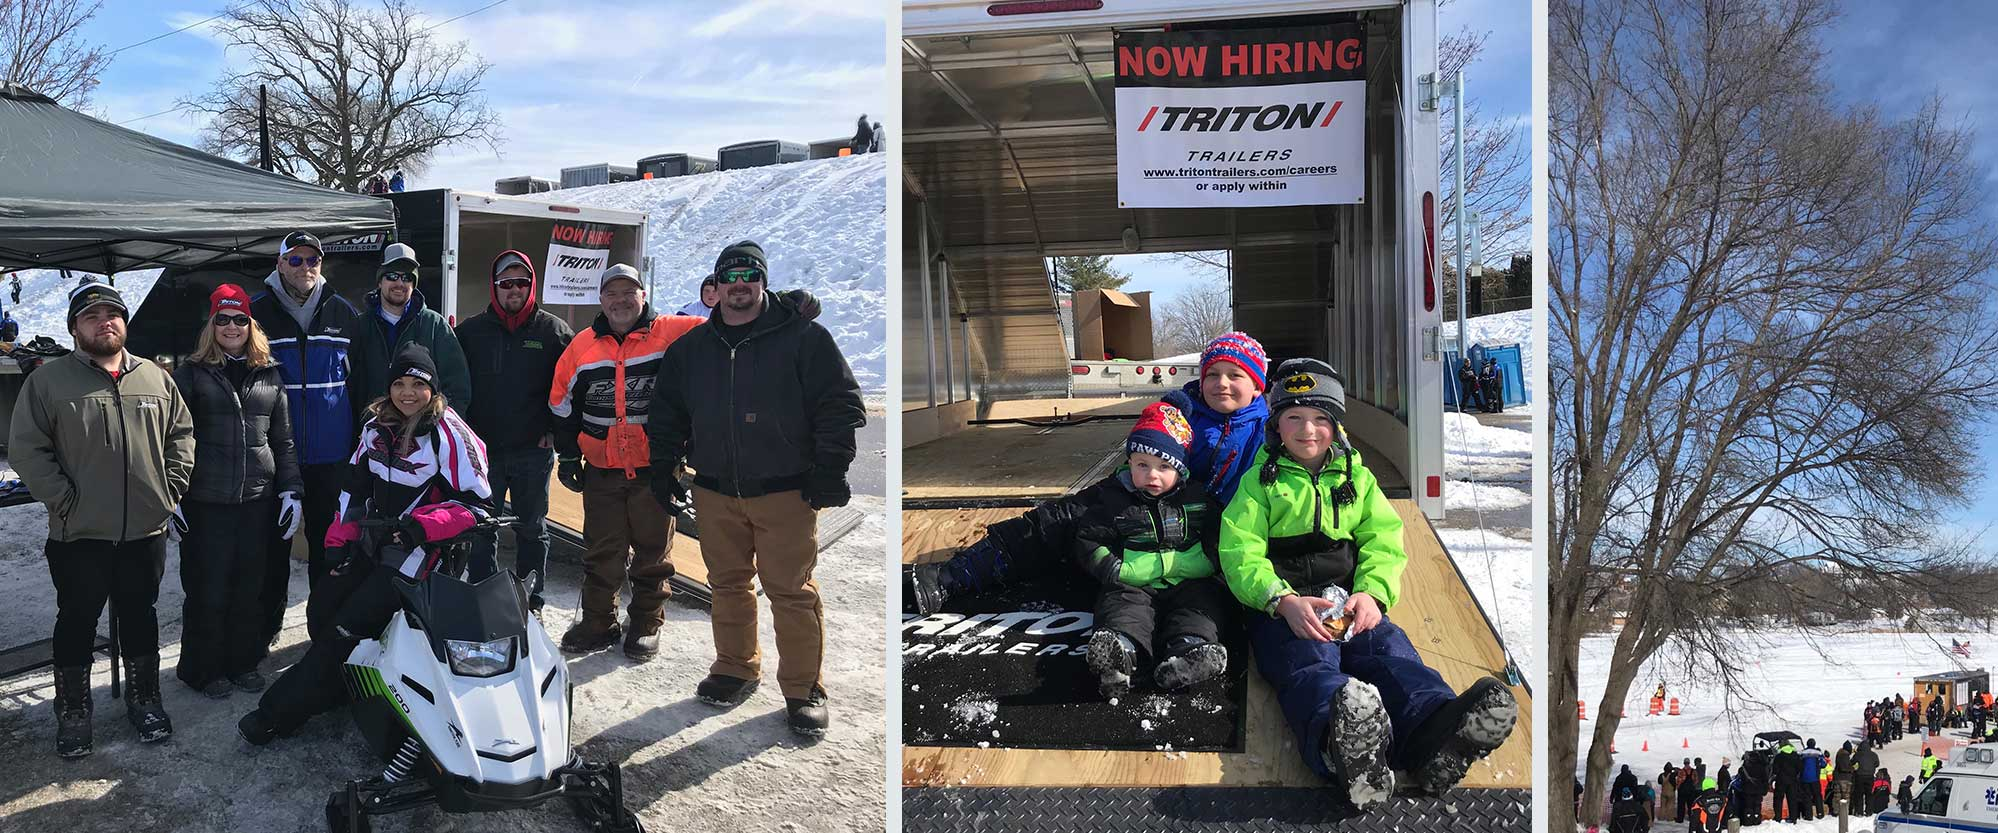 Employees at Neosho Snowmobile races, kids in TC118 Trailer